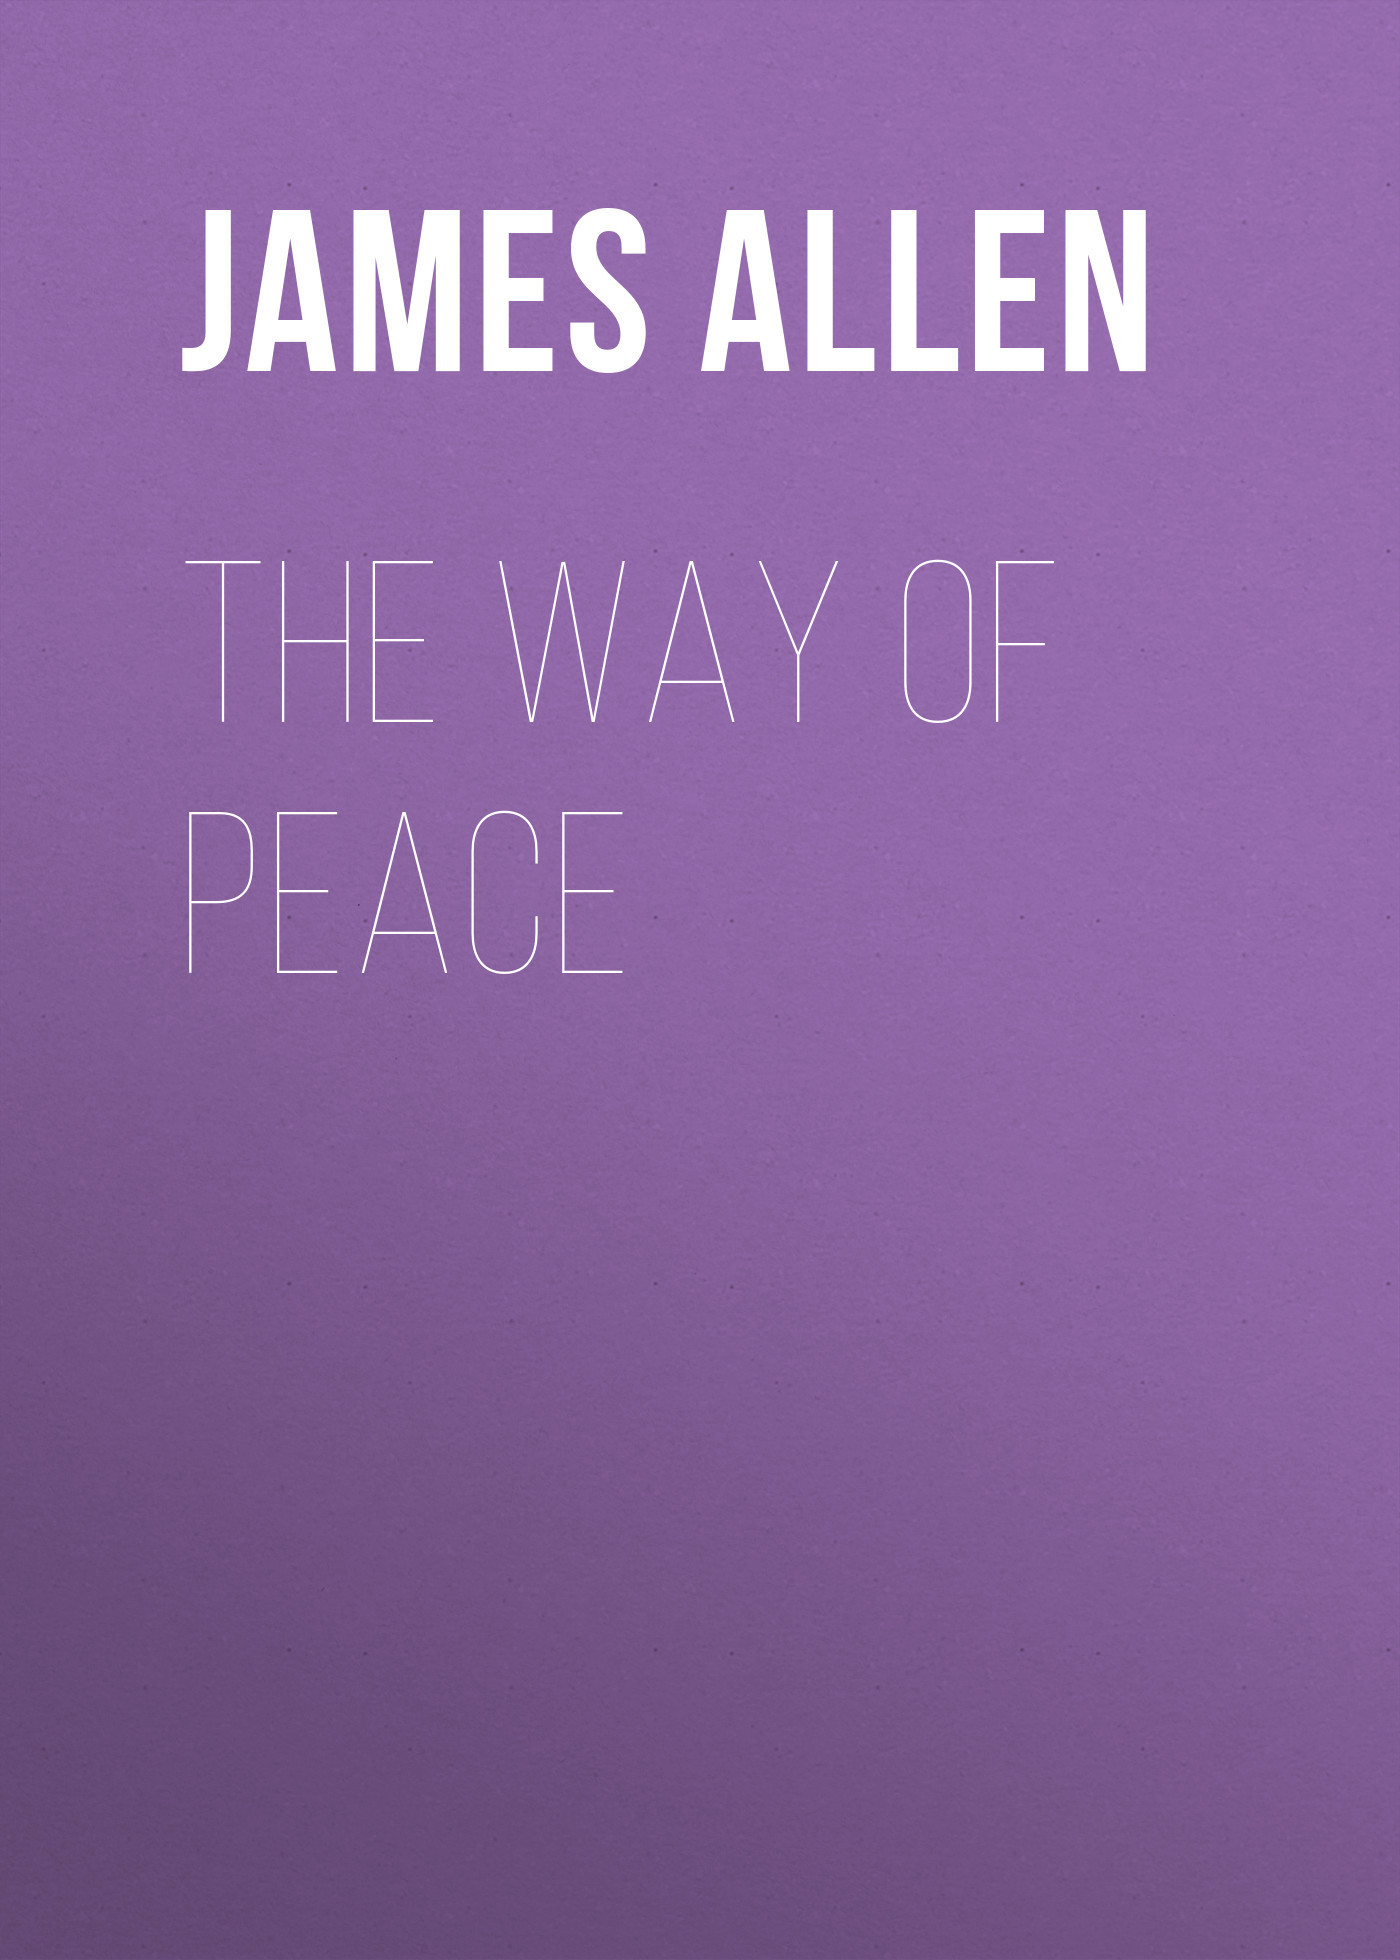 James Allen The Way of Peace book of peace